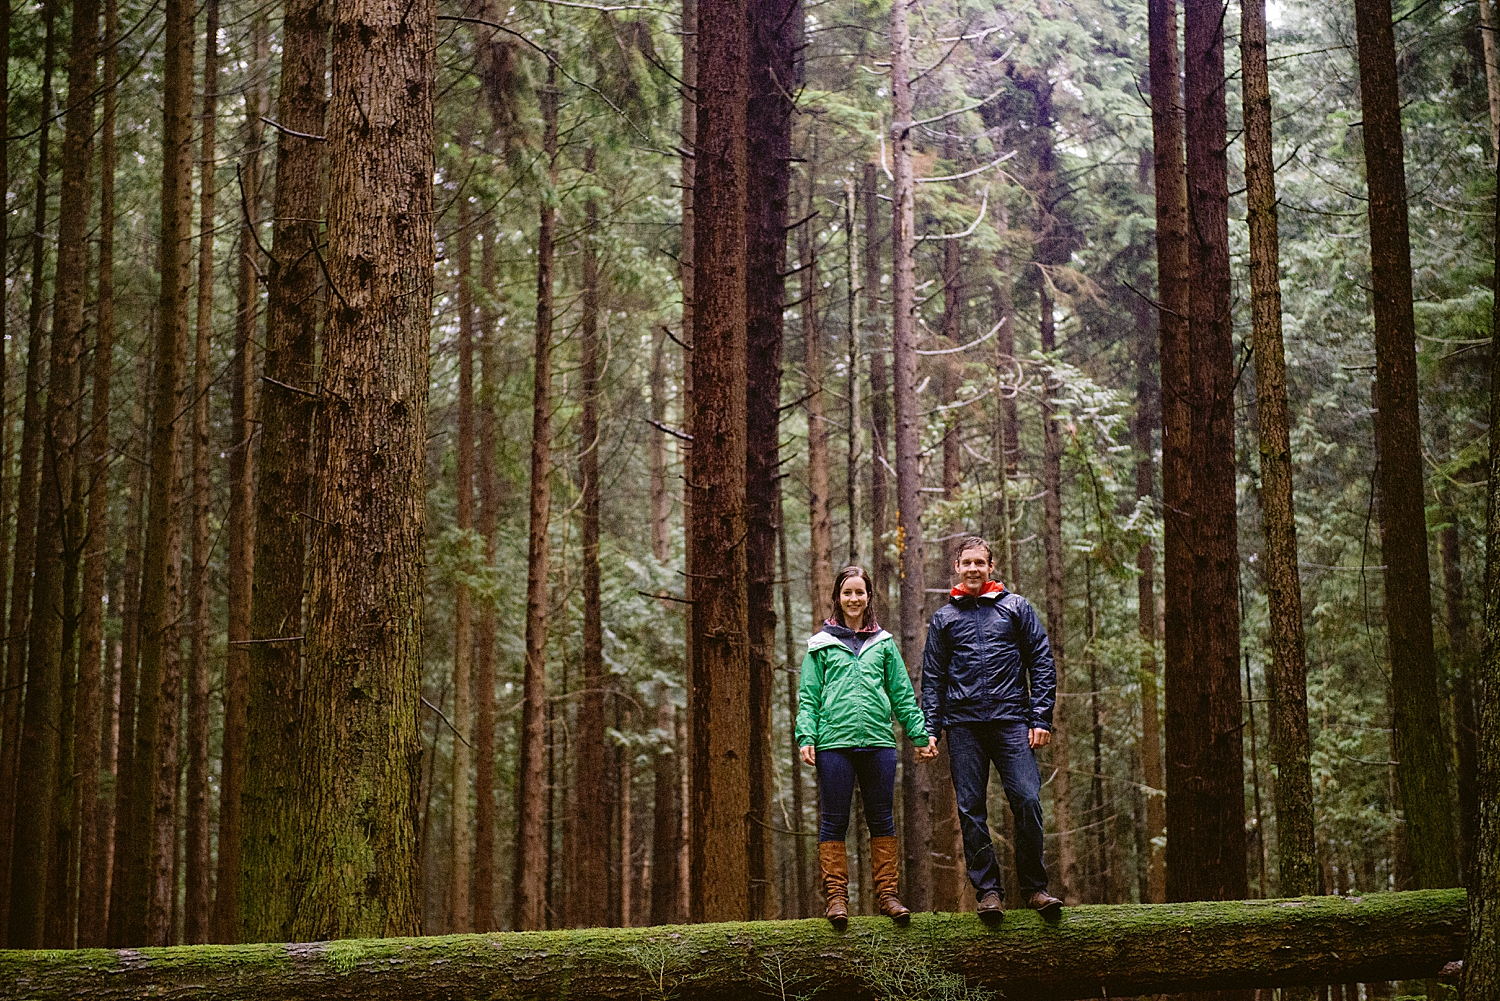 british columbia - pacific spirit park - engagement shoot - vancouver b.c.- maylies lang photography -16.jpg